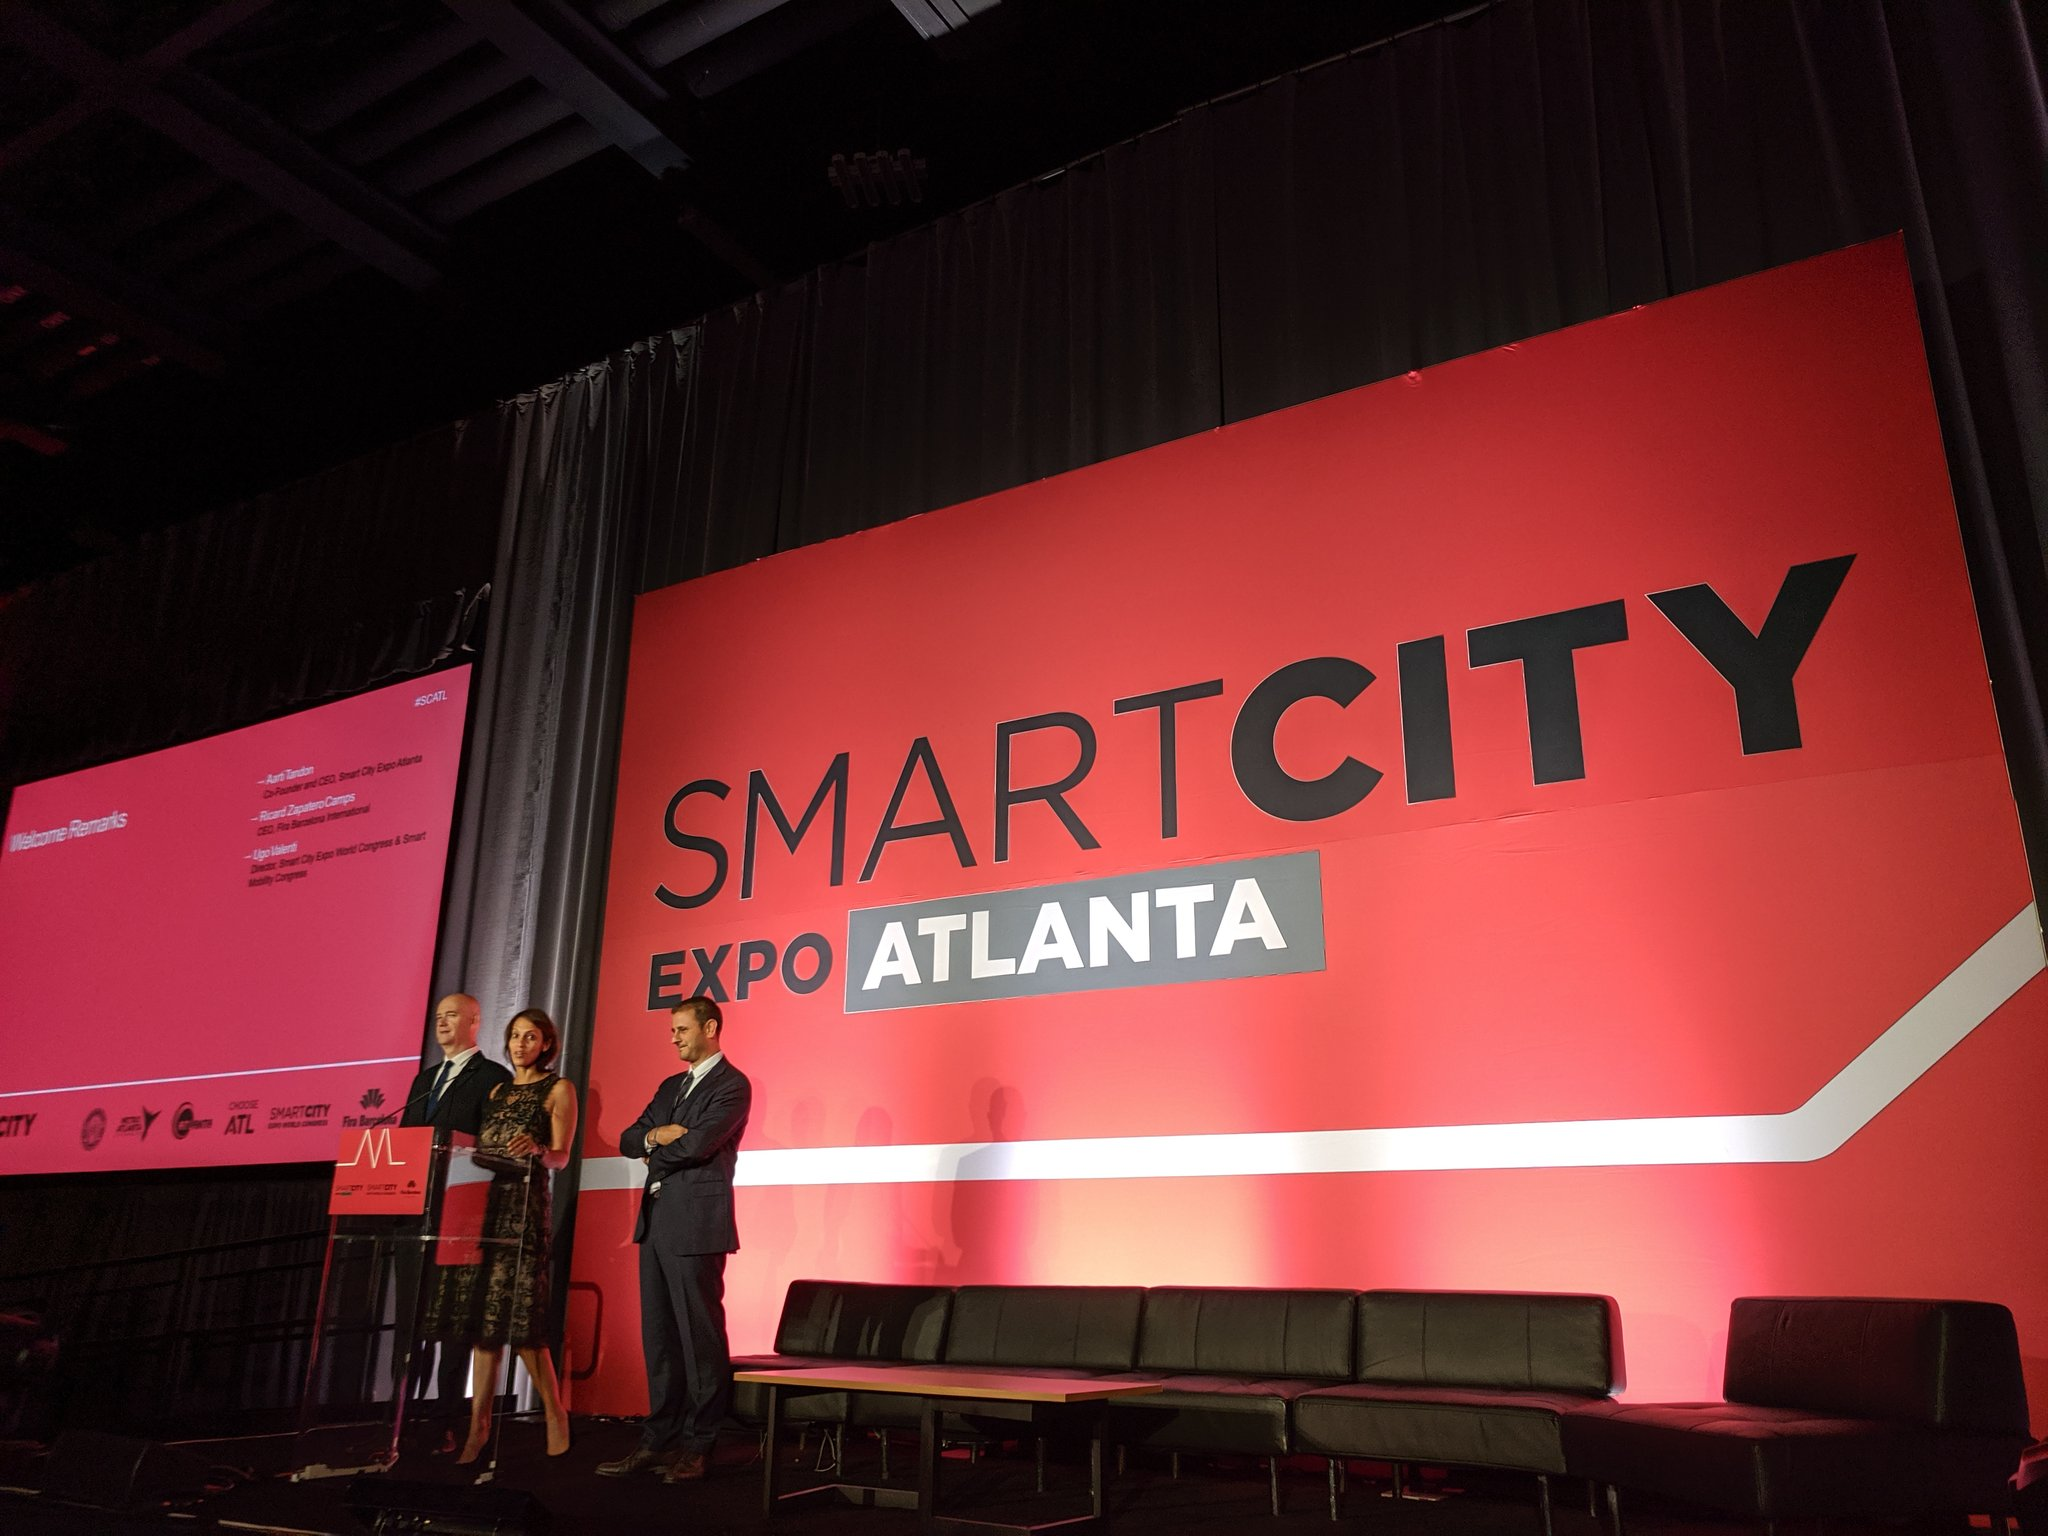 """""""One of the greatest recent learnings from the Smart City Expo Barcelona is that tech alone does not make smart cities. Equity and inclusion must be at their core."""" - @aartitandon #SCATL19 https://t.co/2MNrVGy0Yl"""